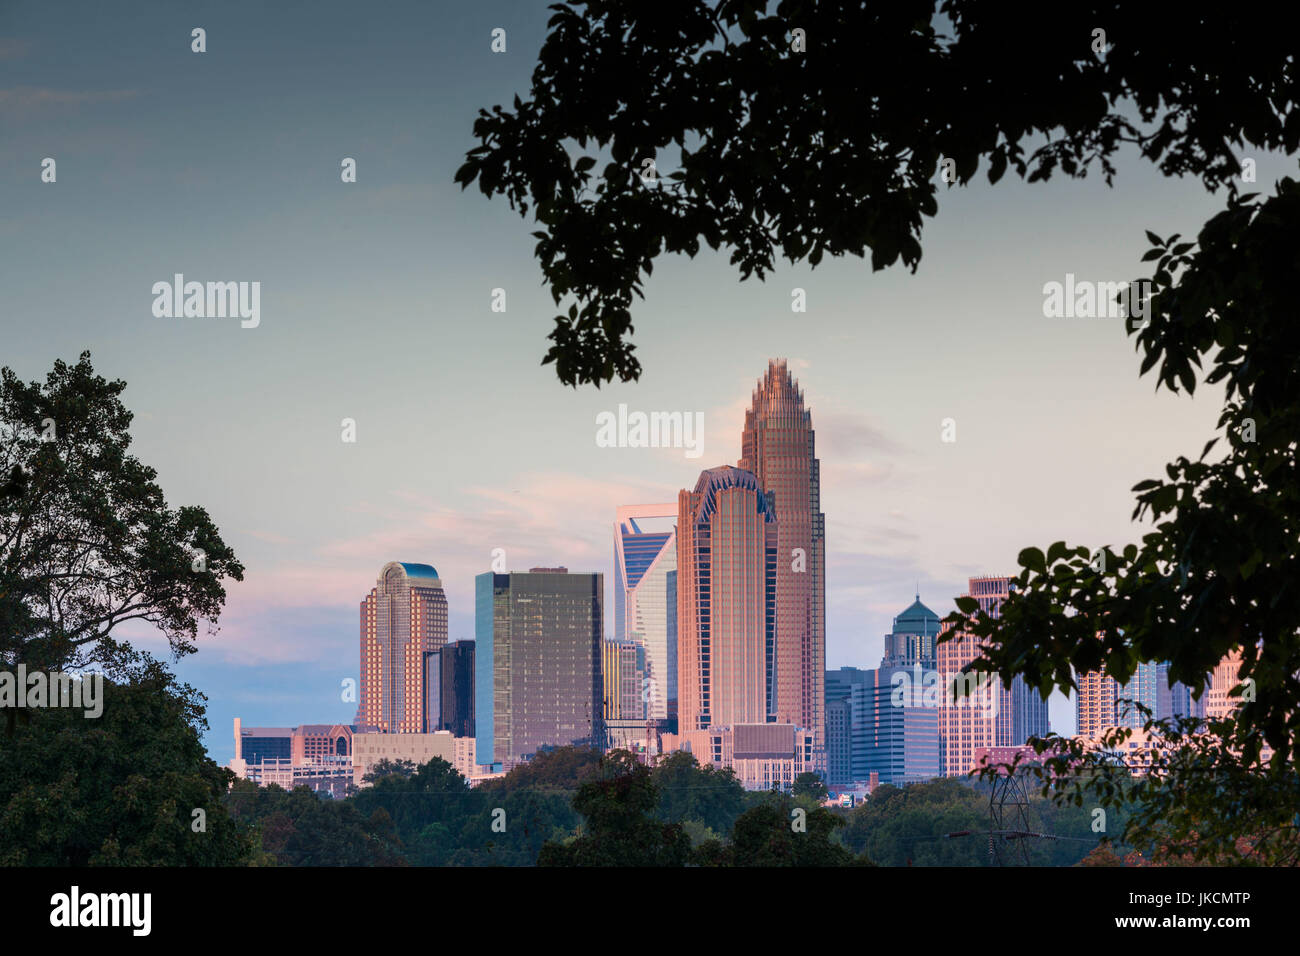 USA, North Carolina, Charlotte, elevated view of the city skyline from the northeast, dawn - Stock Image